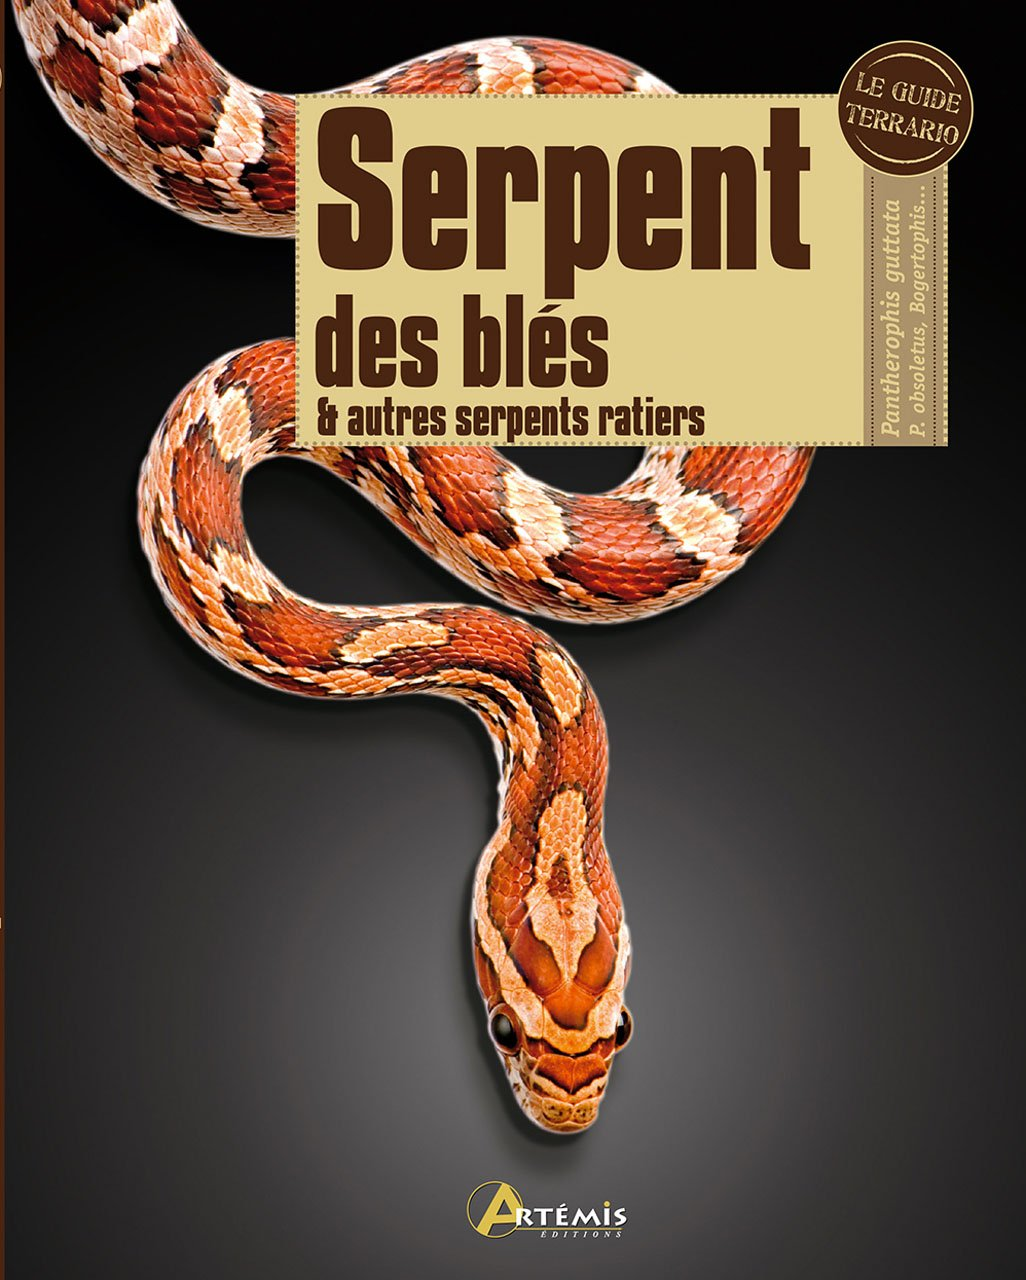 Serpent de blés et autres serpents ratiers Broché – 4 juin 2012 Philip Purser Pierre Bertrand Editions Artémis 2816002578